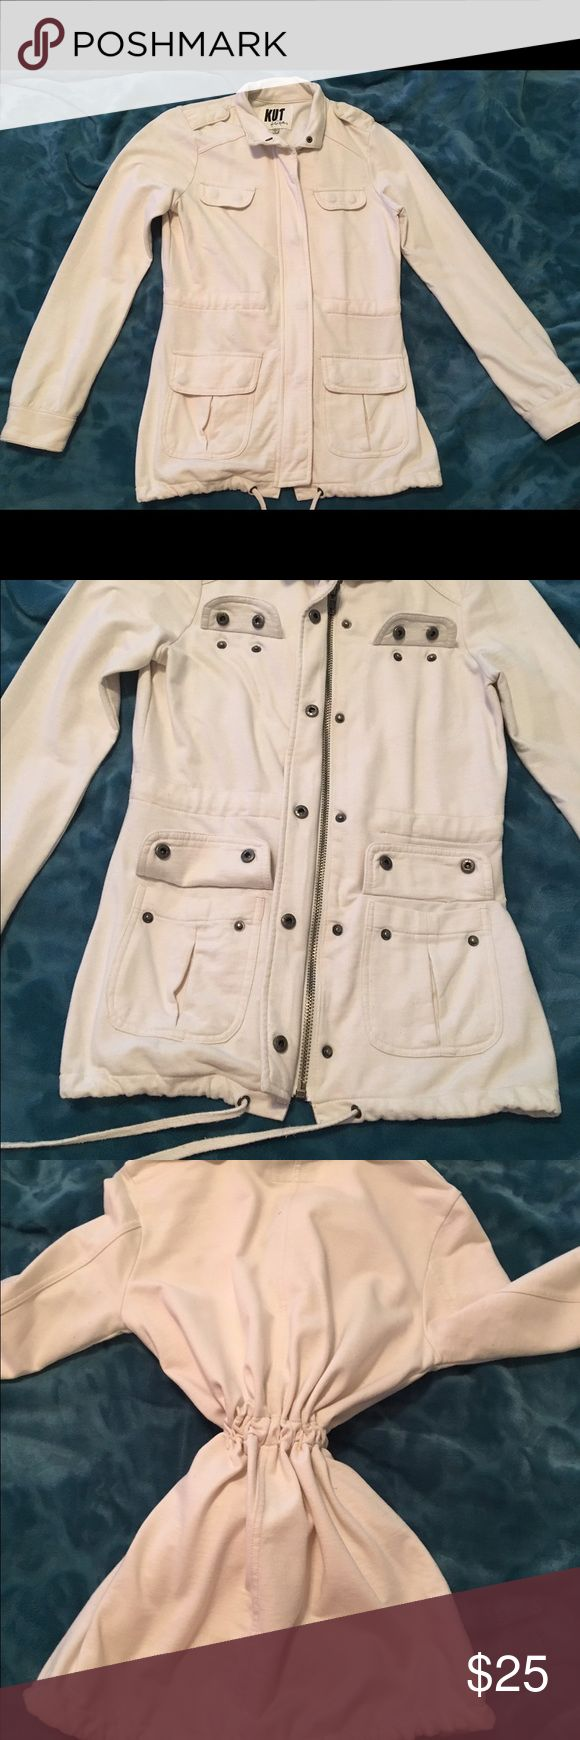 Warm zip up jacket NWOT Women's cream zip up jacket with pockets and draw strings. Size XS. I'm a small and it fits me perfect. Jacket is soft, zips up, buttons up over the zipper, all pockets button down as well. Bottom and center have drawstrings to cinch and keep tight around body. Perfect for those cold winters. Can wear jacket open with cuffs pushed up and a scarf for a great fall look. Never worn but no tags. Perfect condition. #cream #xs #jacket #zipper #buttons ❌no trades❌ Jackets…